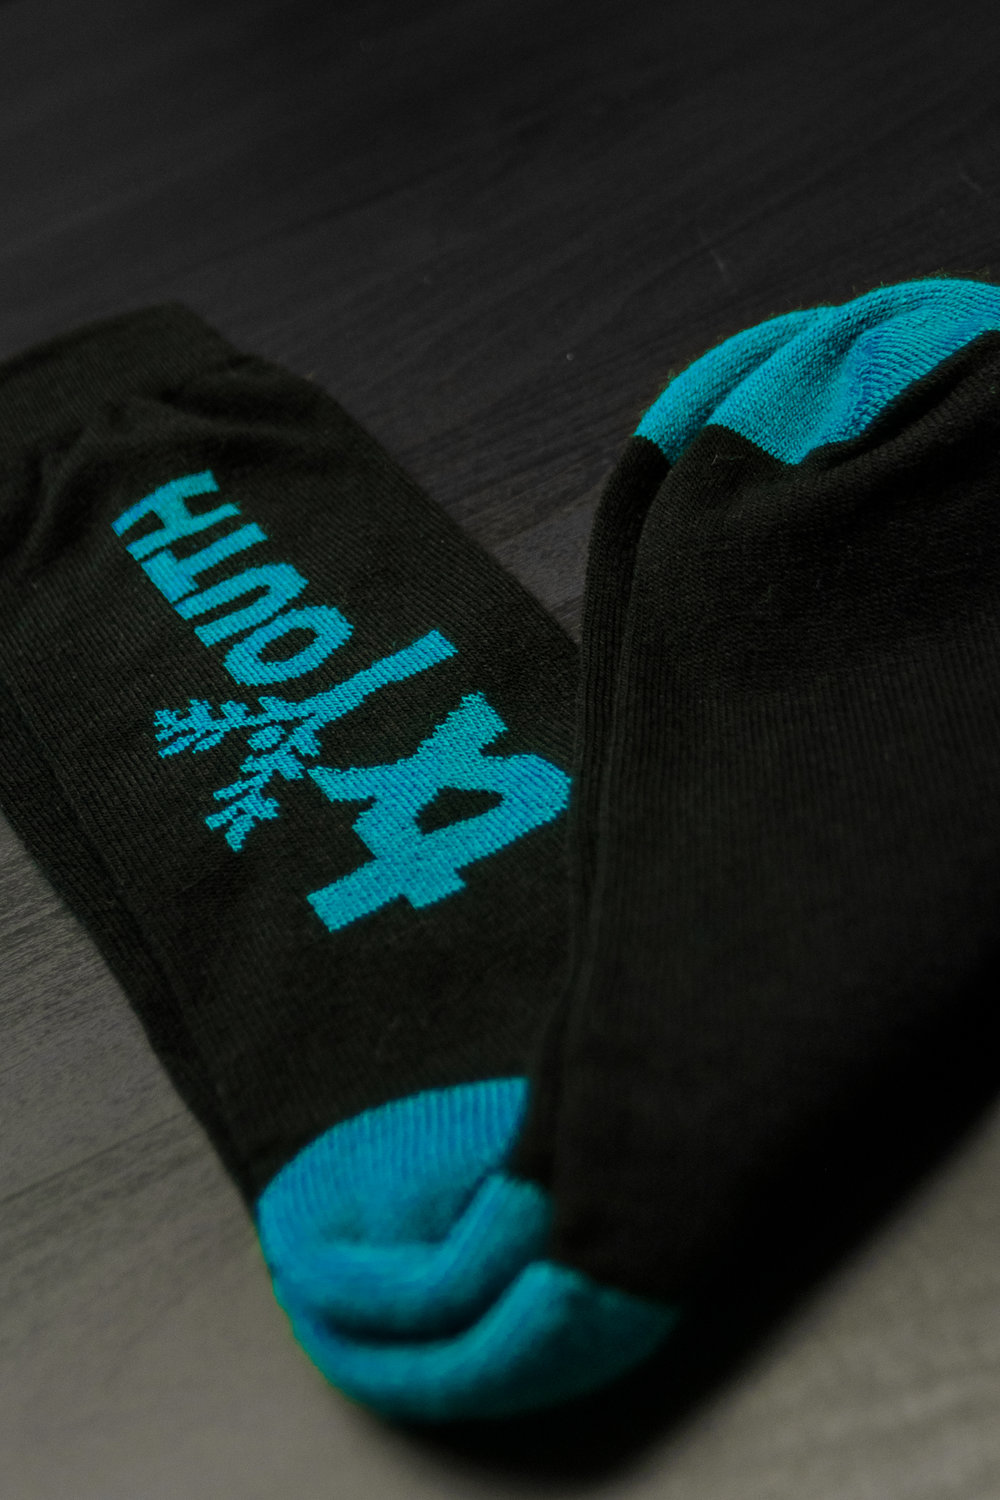 TX YOUTH -  BLUE LOGO SOCKS    $10.00